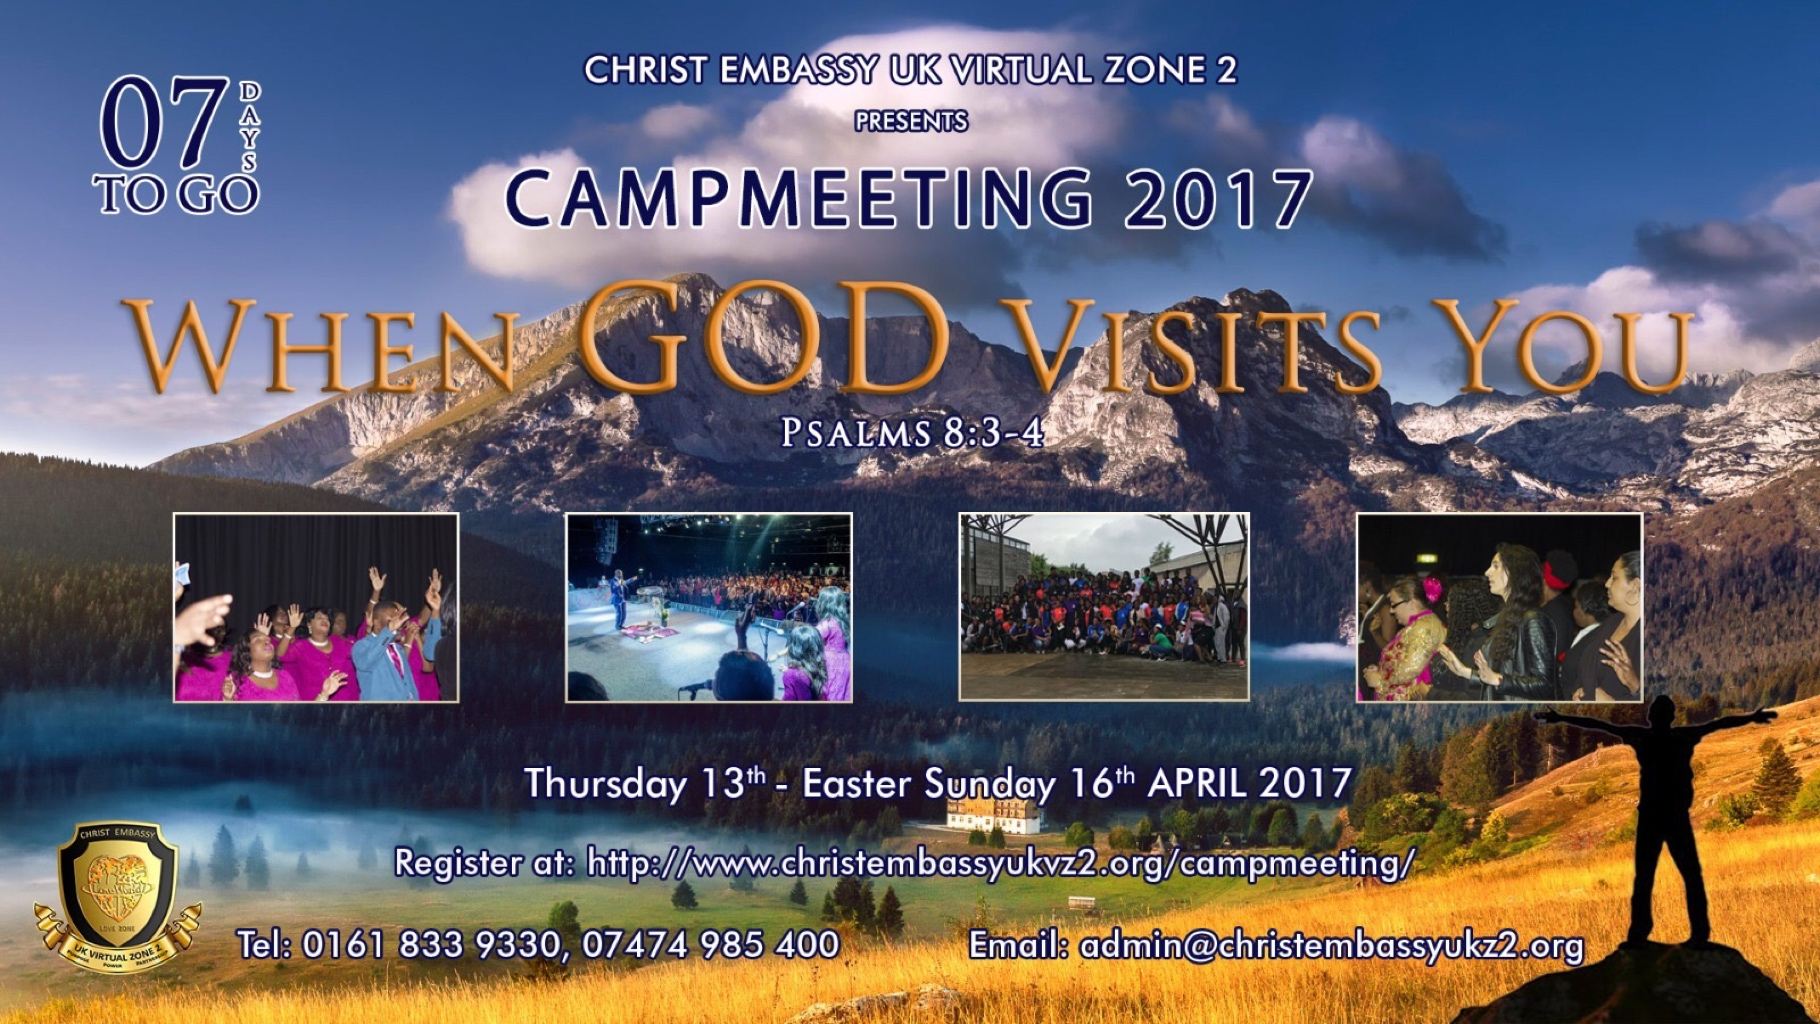 #Campmeeting2017 let's start to pack